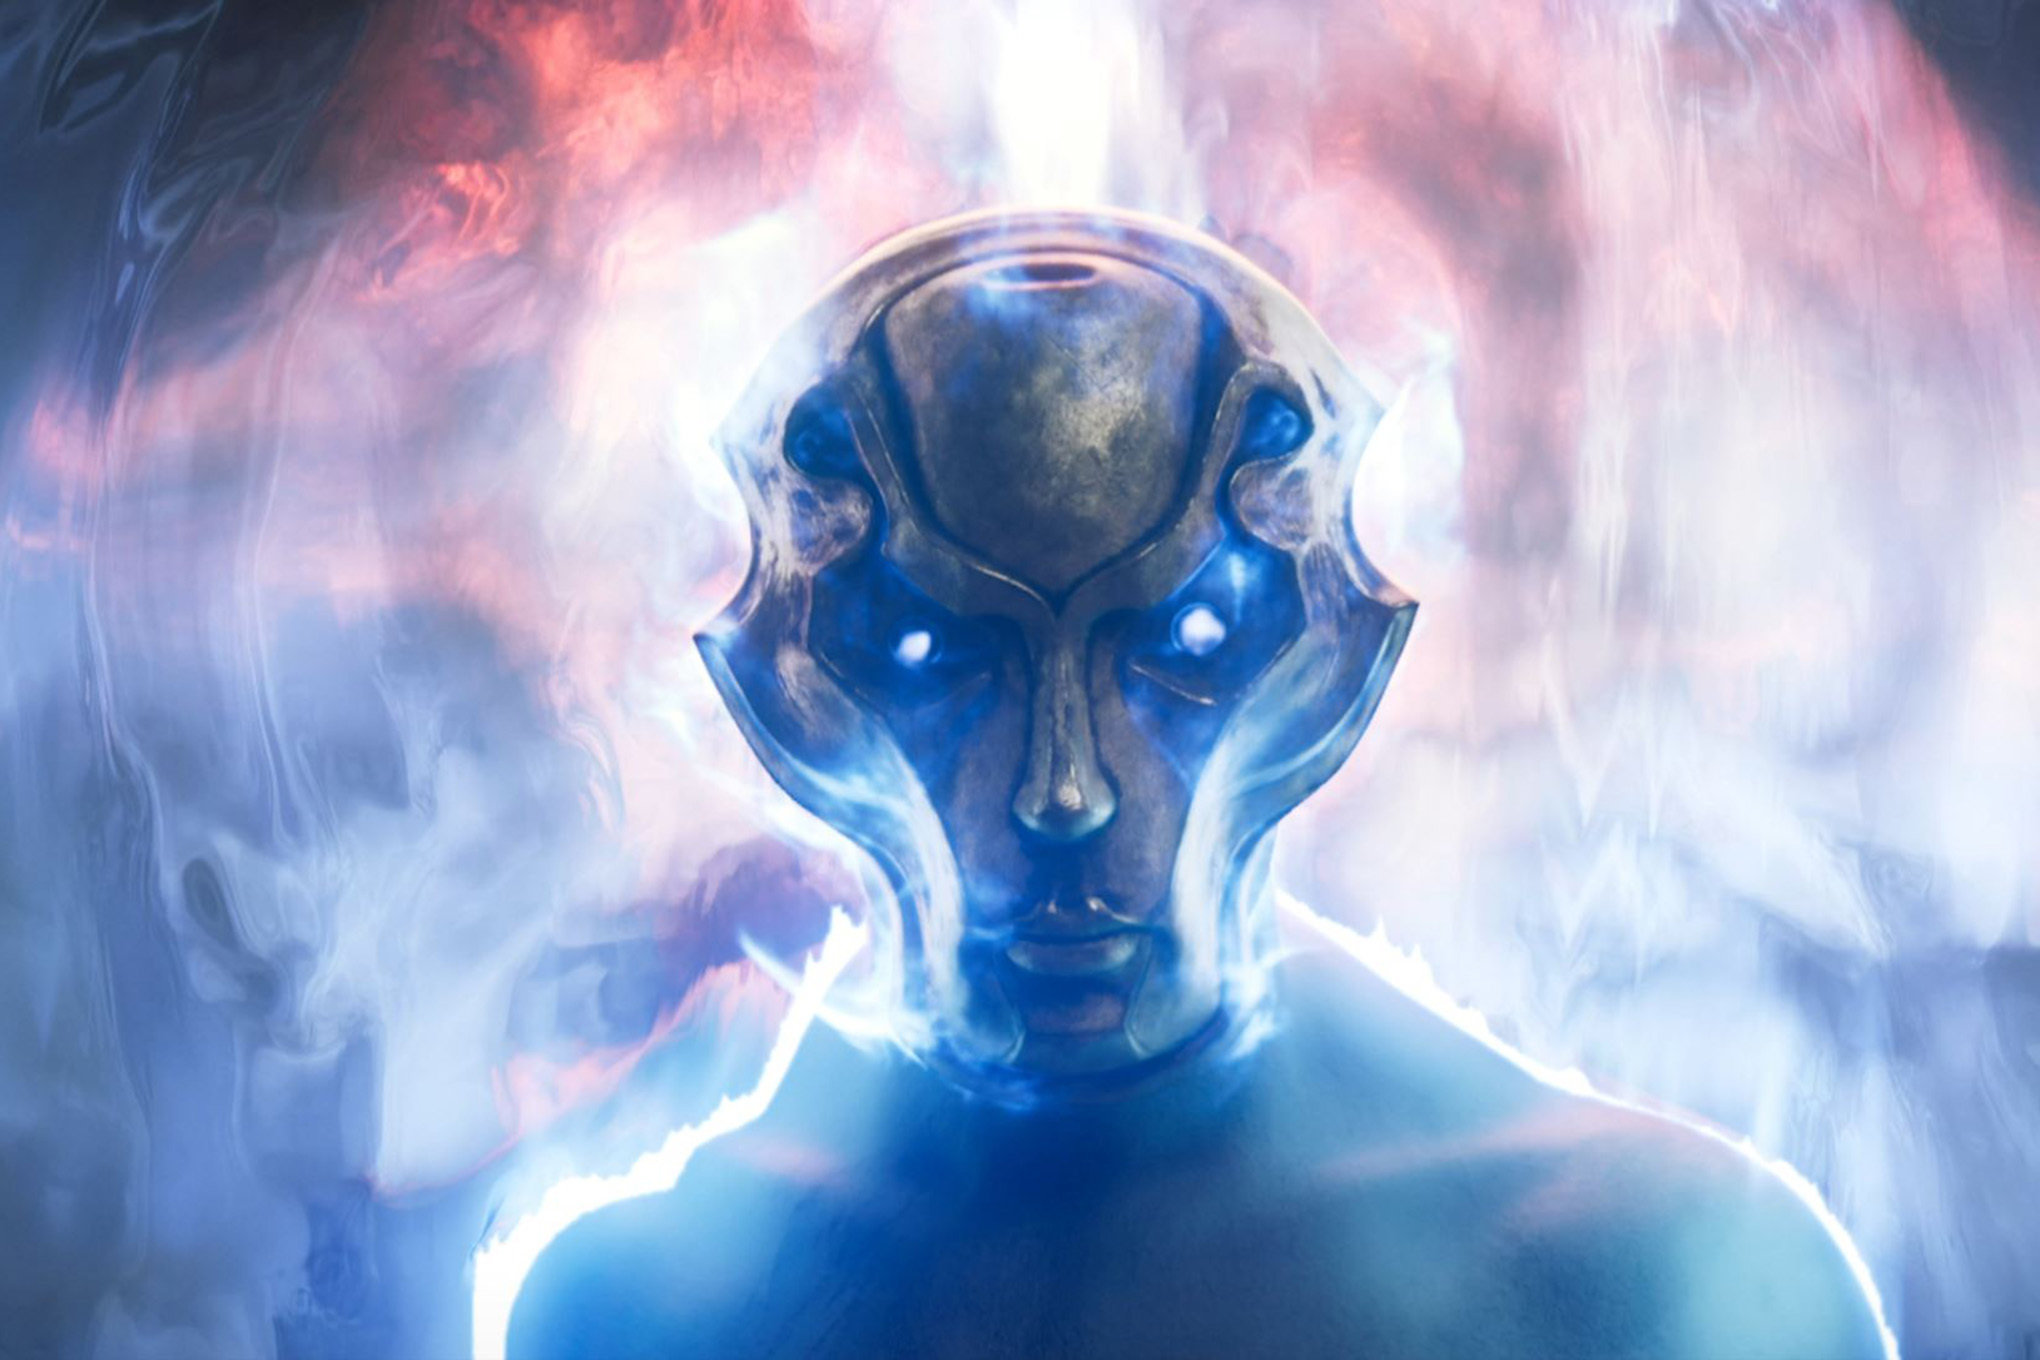 A still image from the Magic: The Gathering trailer for the next set, Theros: Beyond Death. It shows a masked face passing through a shimmering portal.